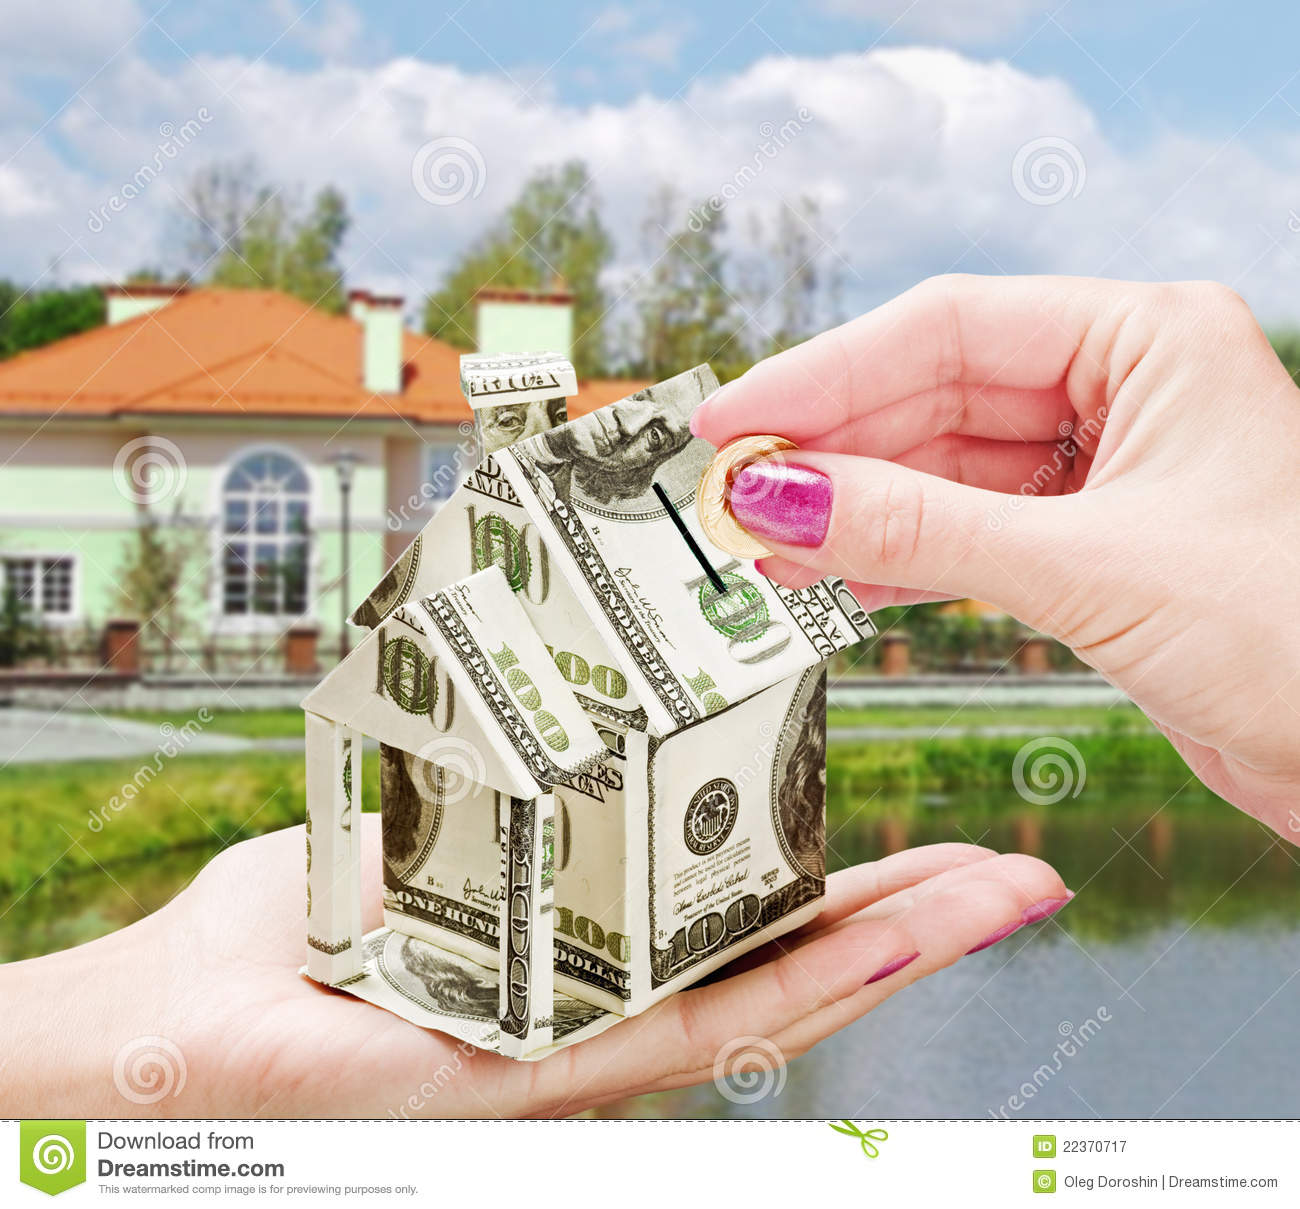 Purchasing A New Home buying a new home royalty free stock photography - image: 22370717